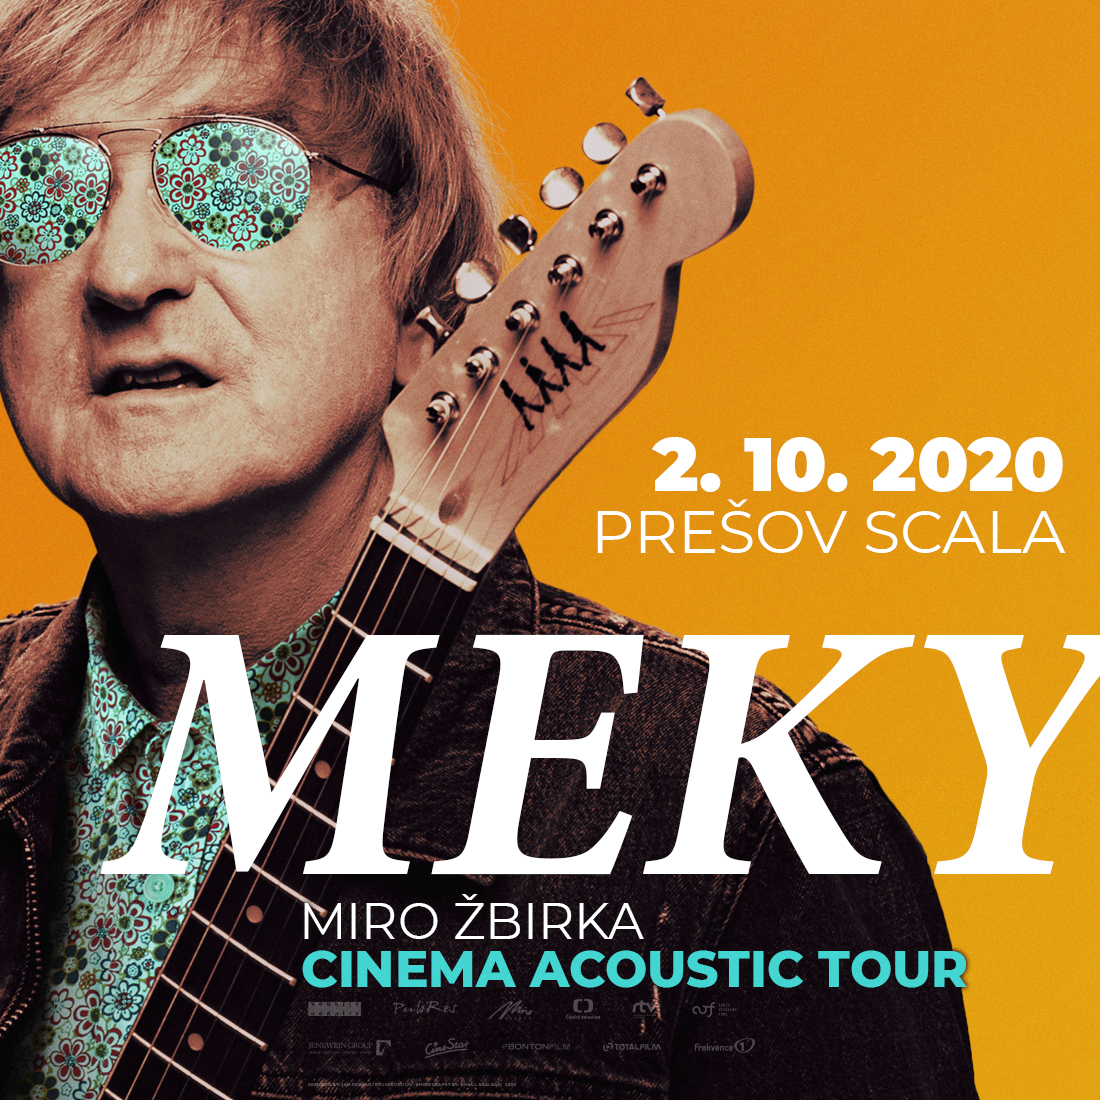 picture Miro Žbirka Cinema Acoustic Tour